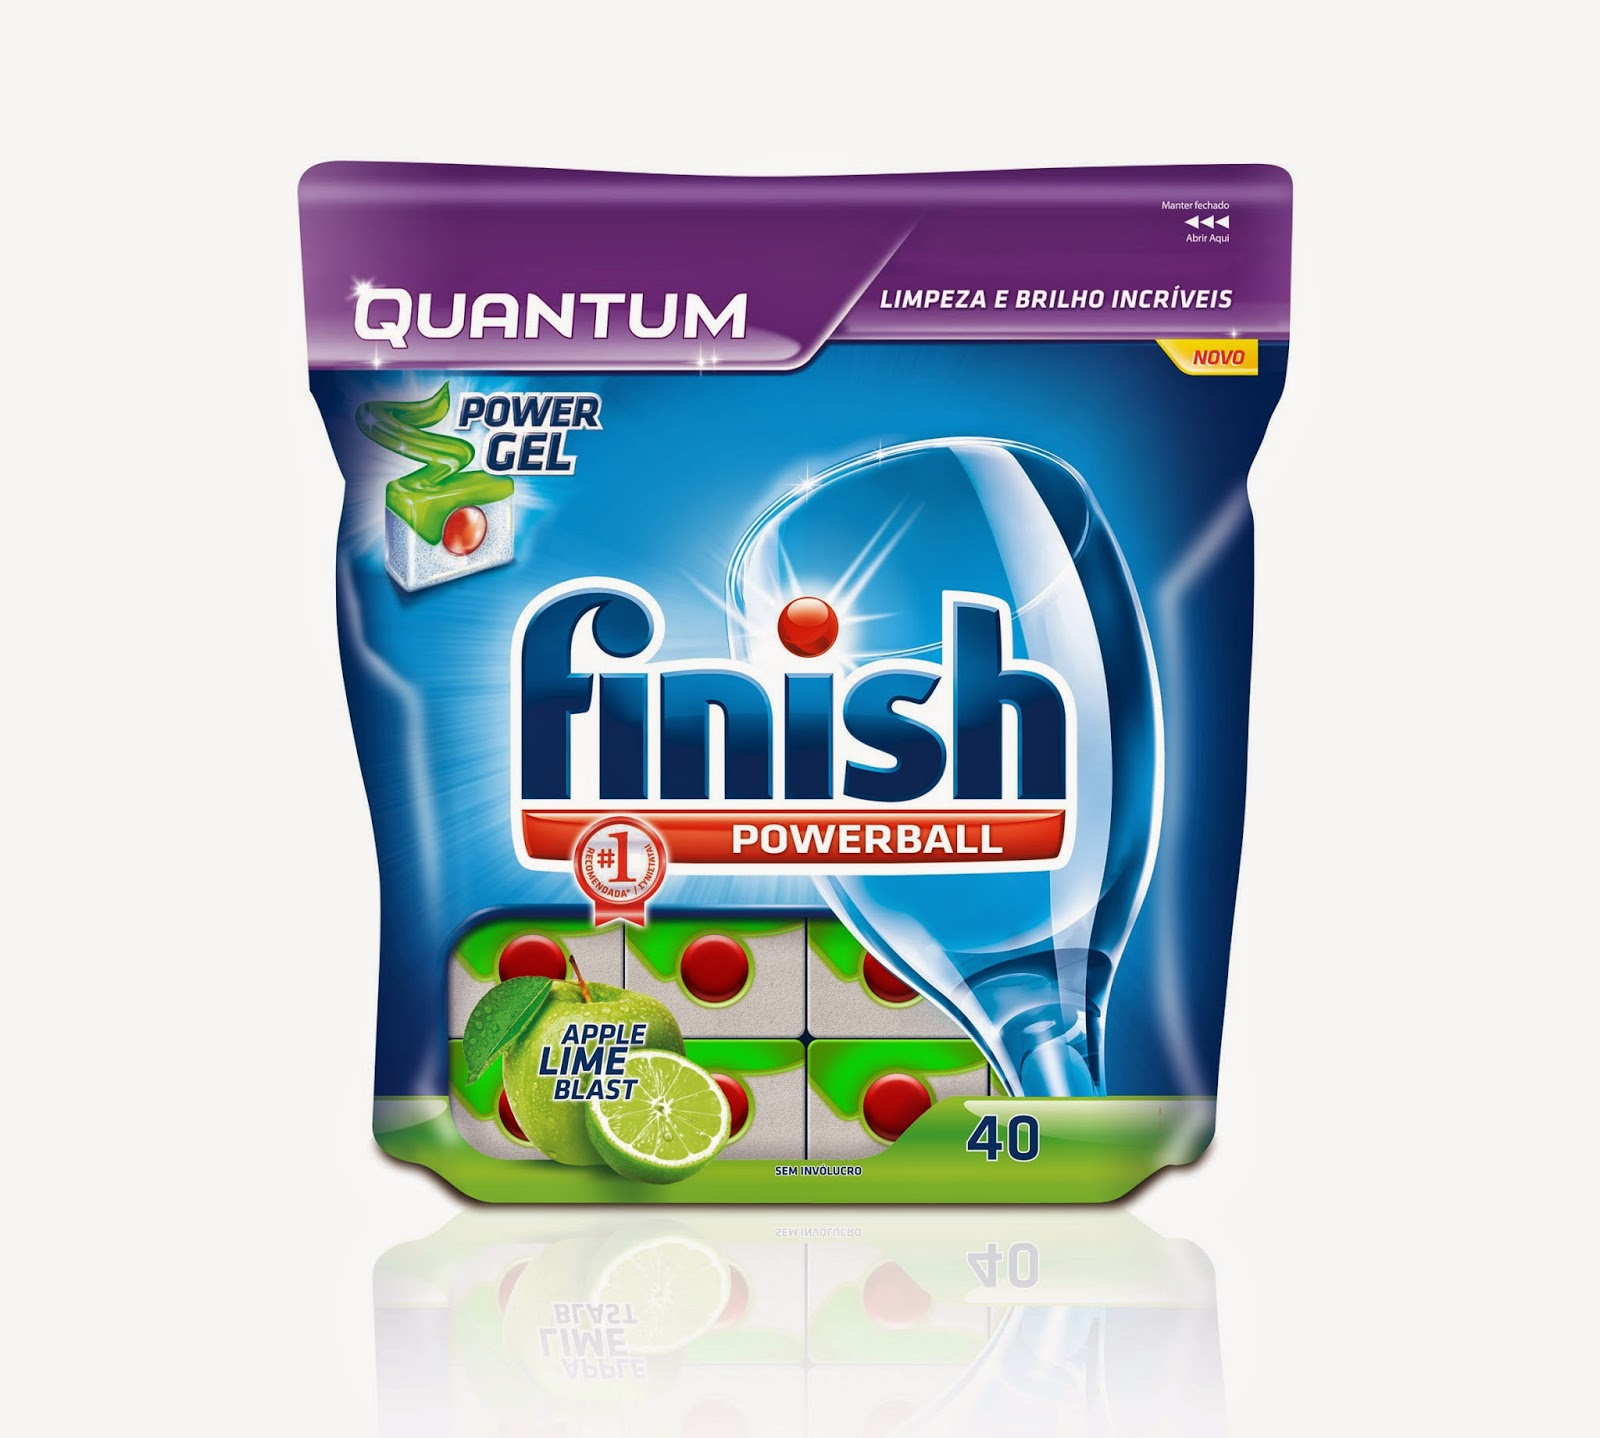 http://amostras-passatempos.blogspot.pt/2014/06/passatempo-finish-quantum-power-gel-by.html